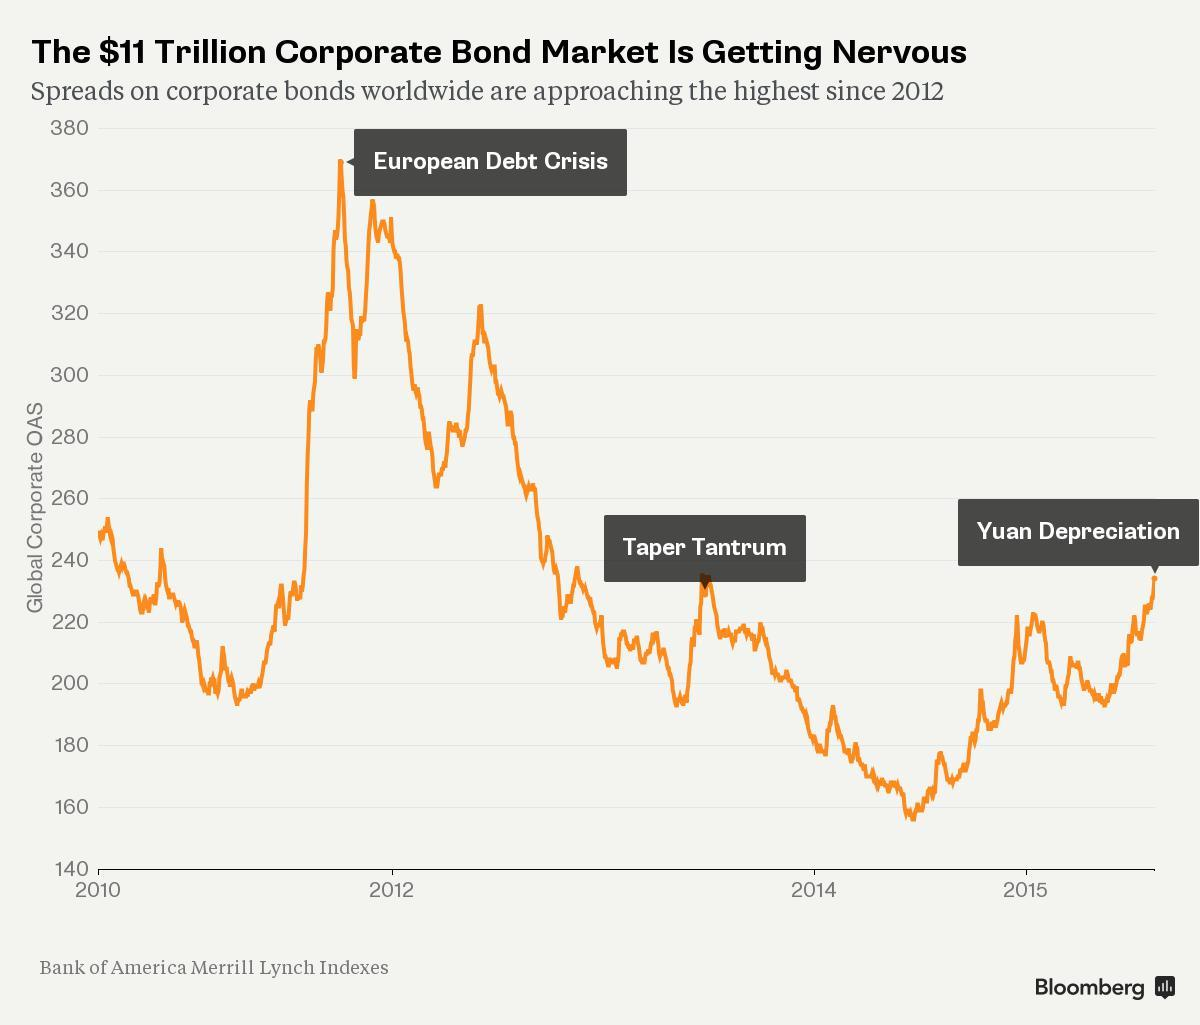 The World's Credit Investors Are Getting More and More Skittish http://t.co/BpeD8xF97z